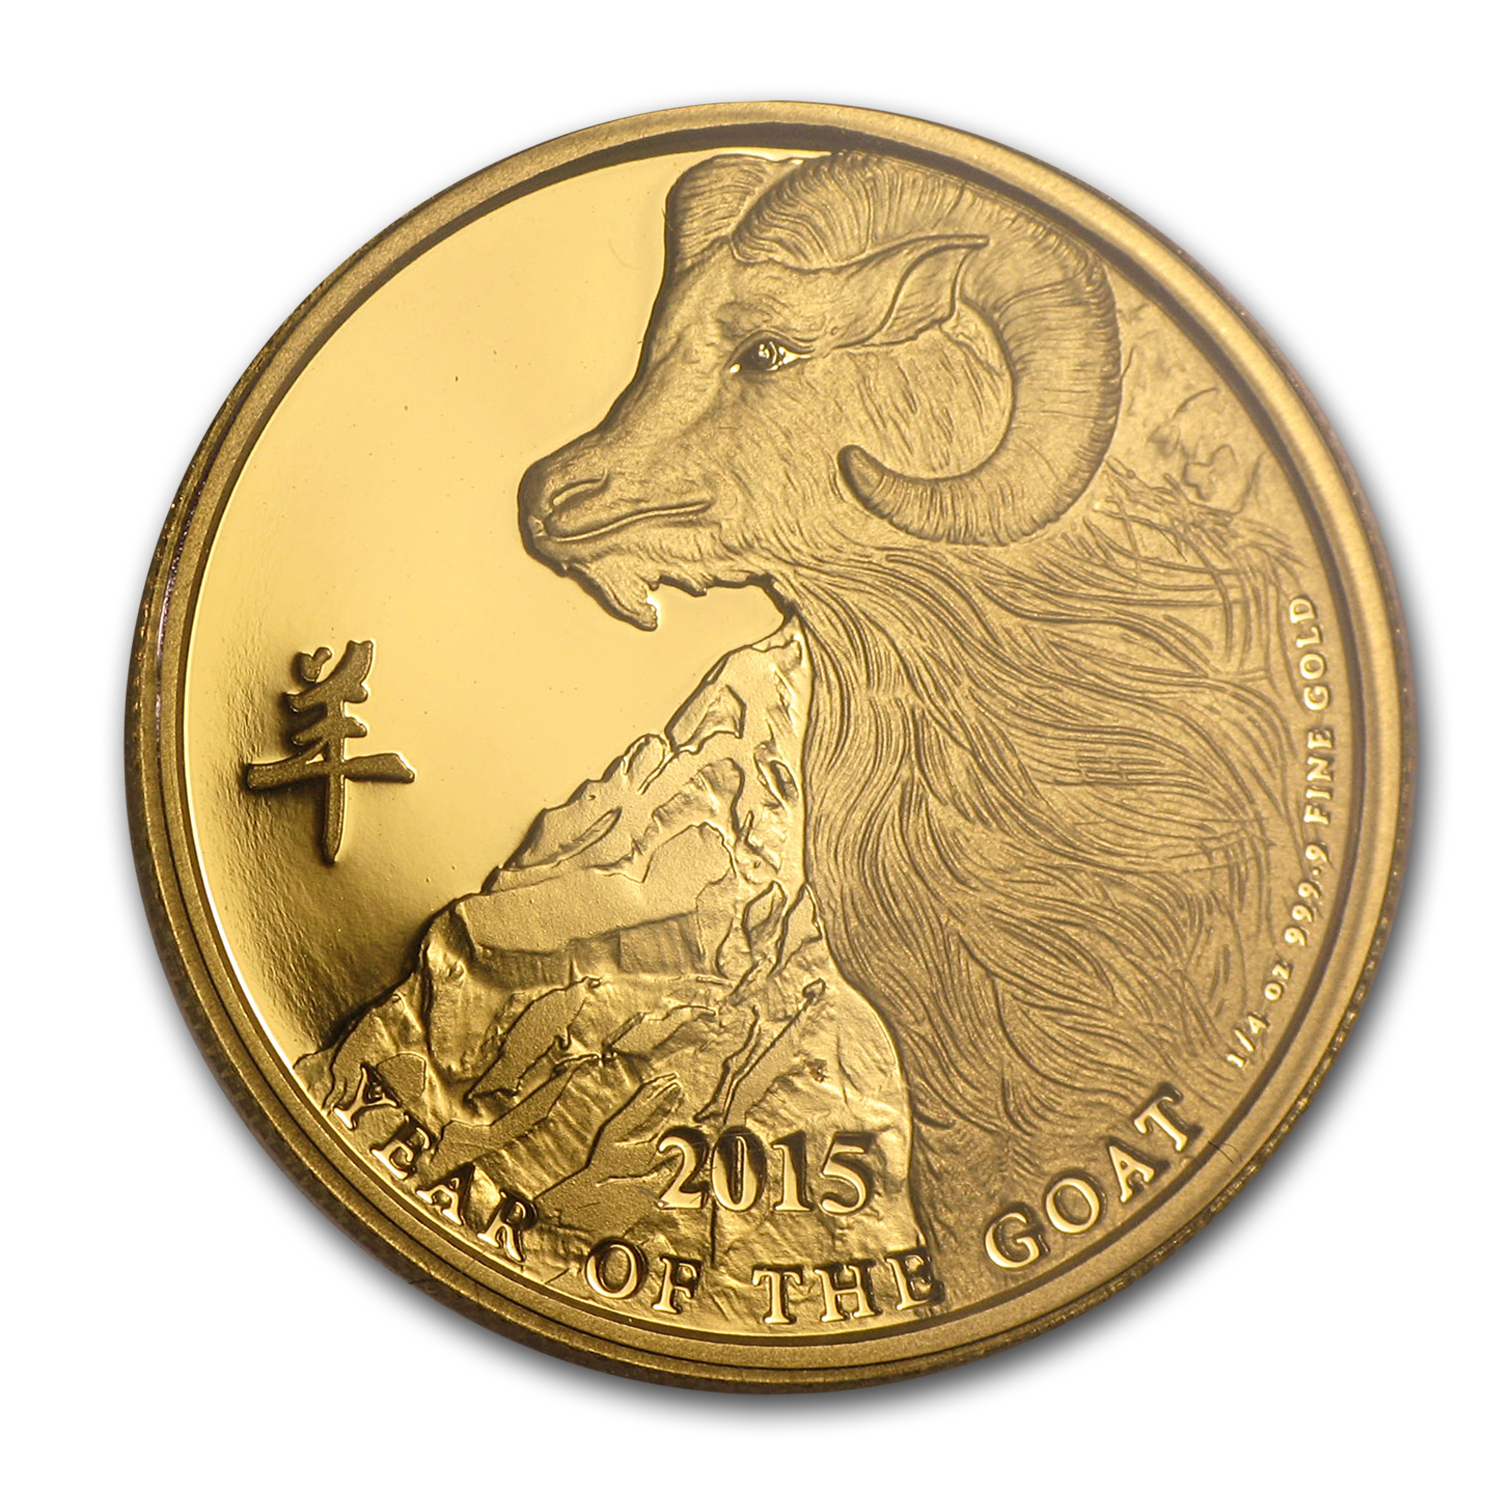 2015 1/4 oz Gold Niue $25 Lunar Goat Proof